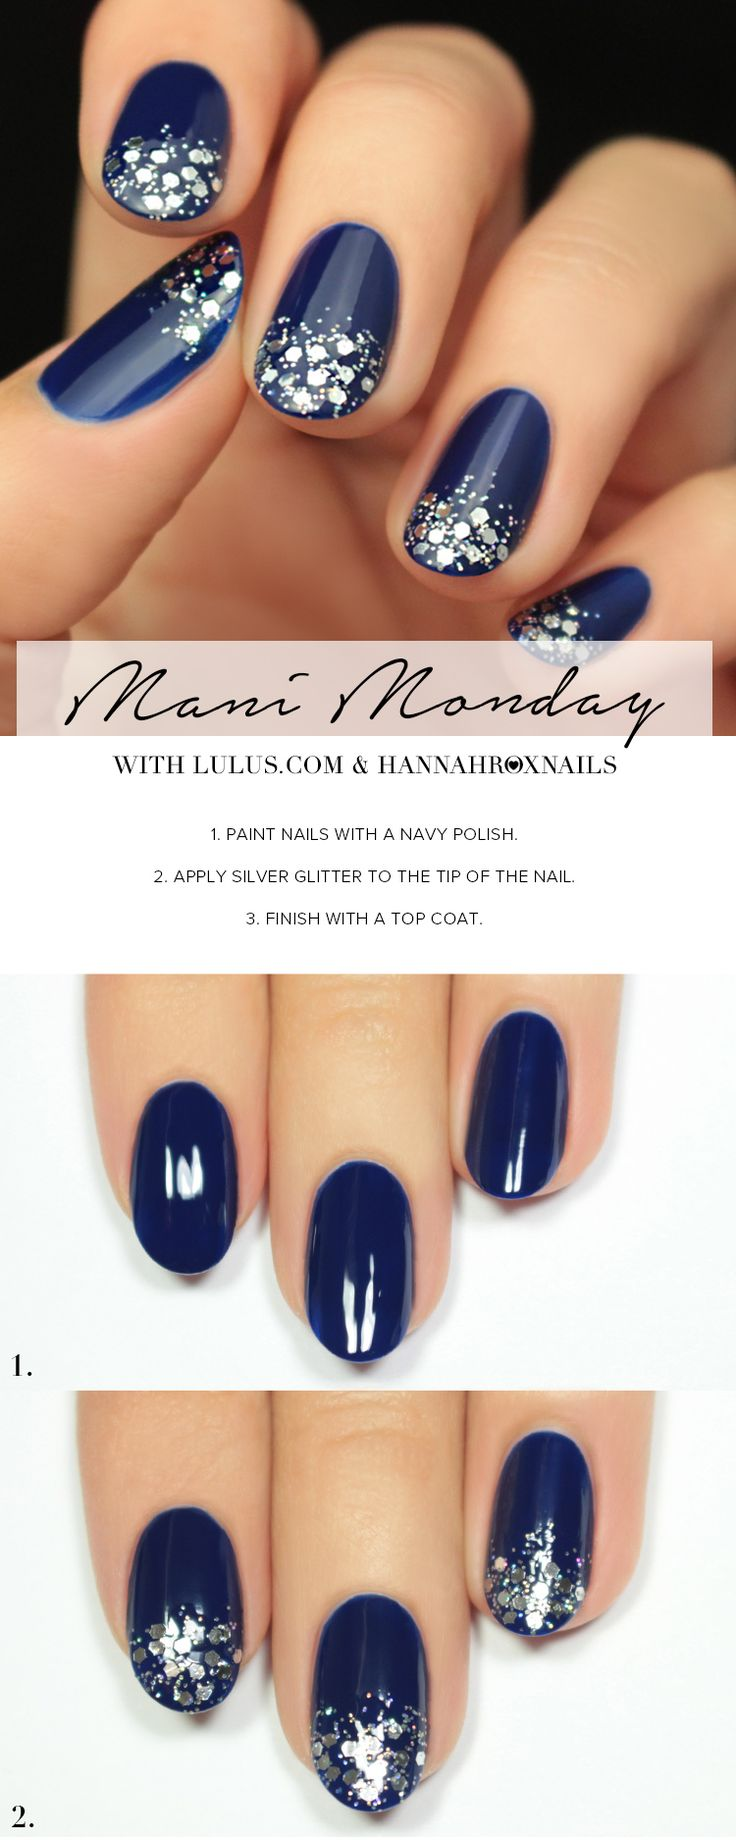 Mani Monday: Navy Blue and Silver Glitter Nail Tutorial | Lulus.com Fashion Blog | Bloglovin'